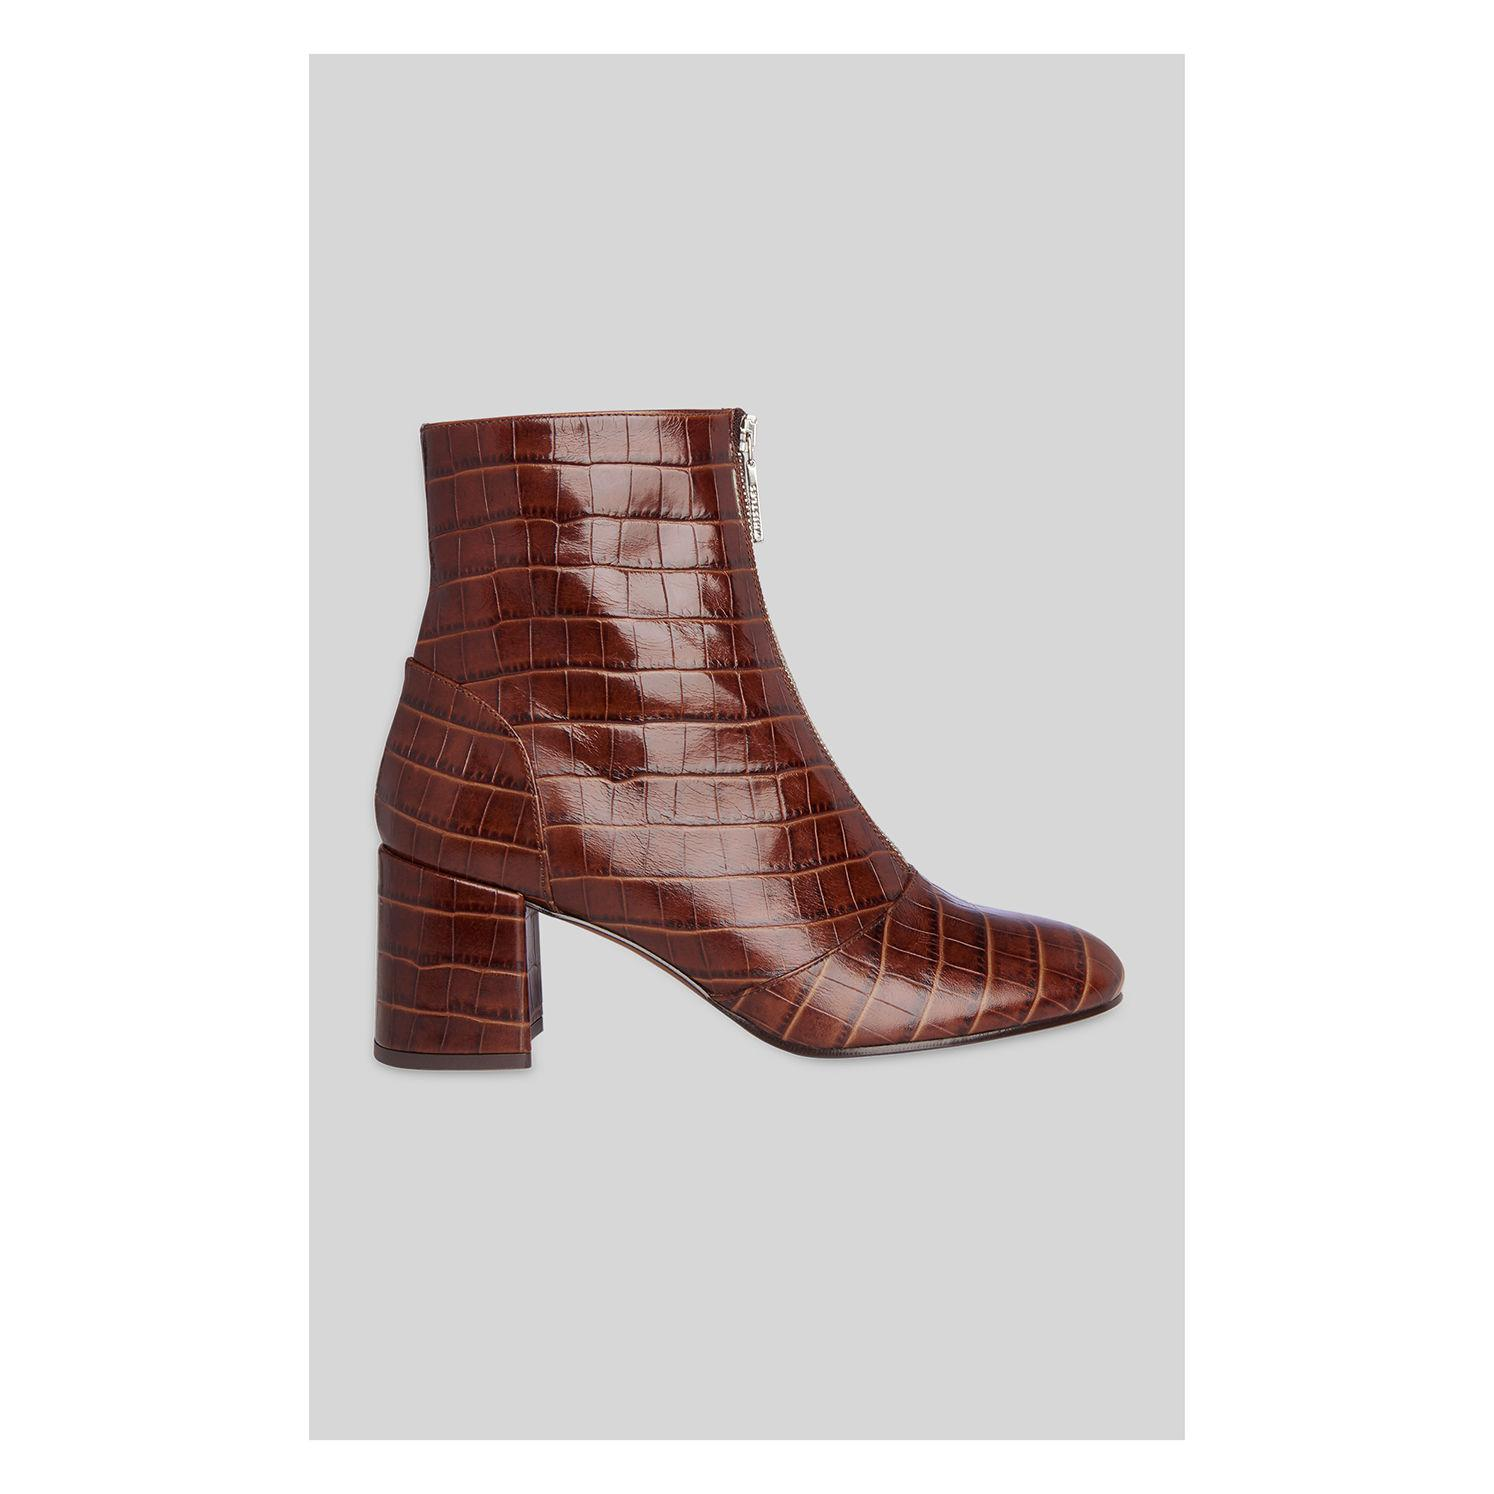 c272ae2cfd5 Whistles Rowan Croc Zip Front Boot in Brown - Lyst